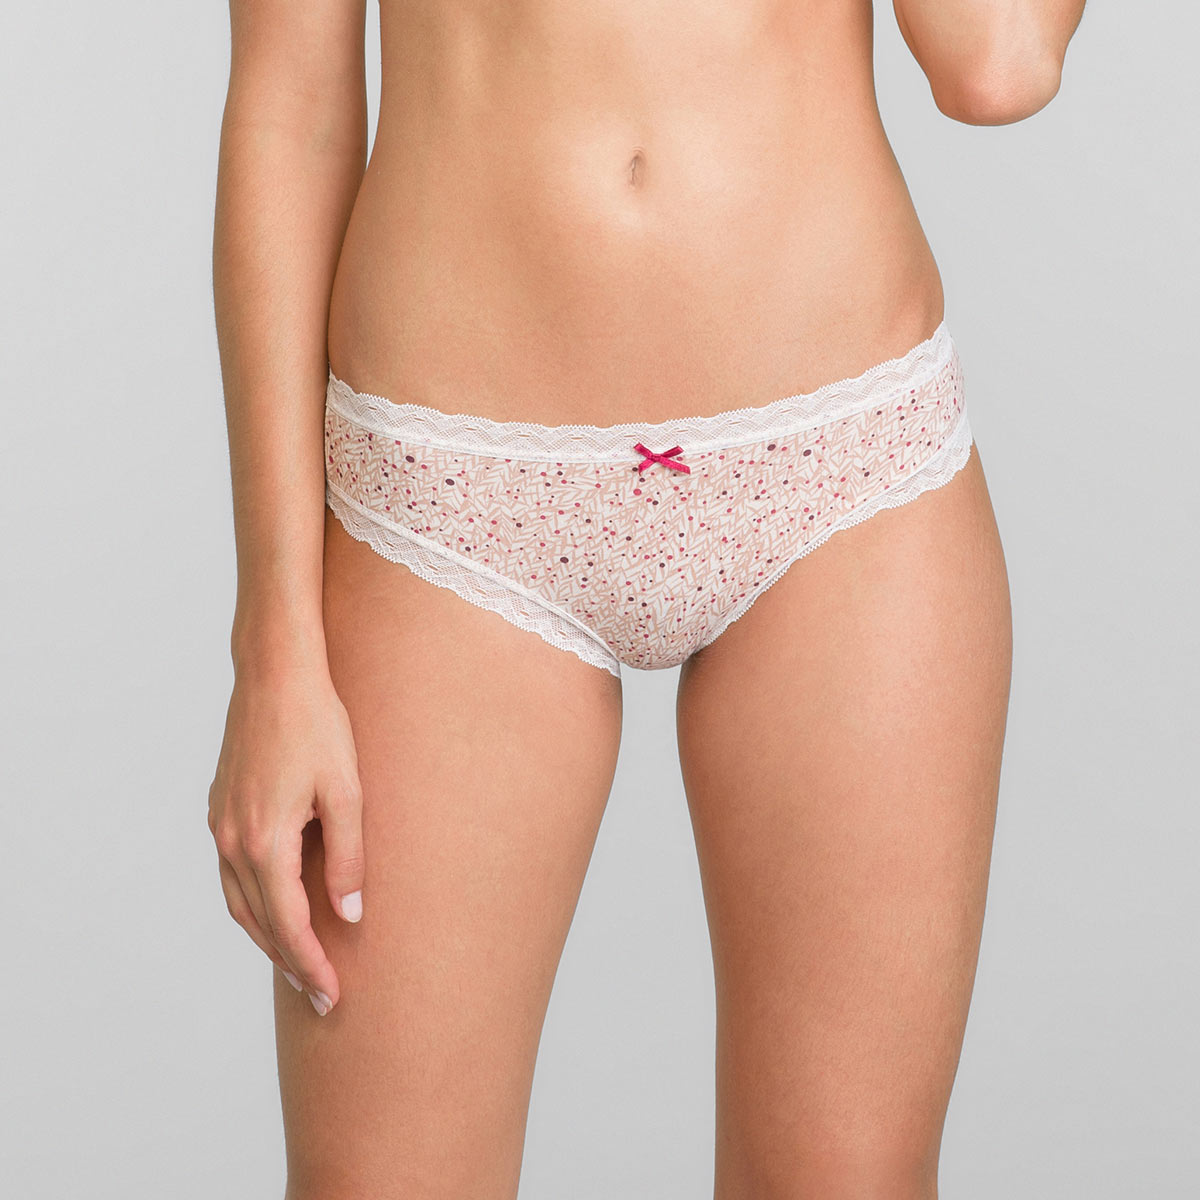 Knickers in Red Cherry Tree Print Cotton Fancy, , PLAYTEX